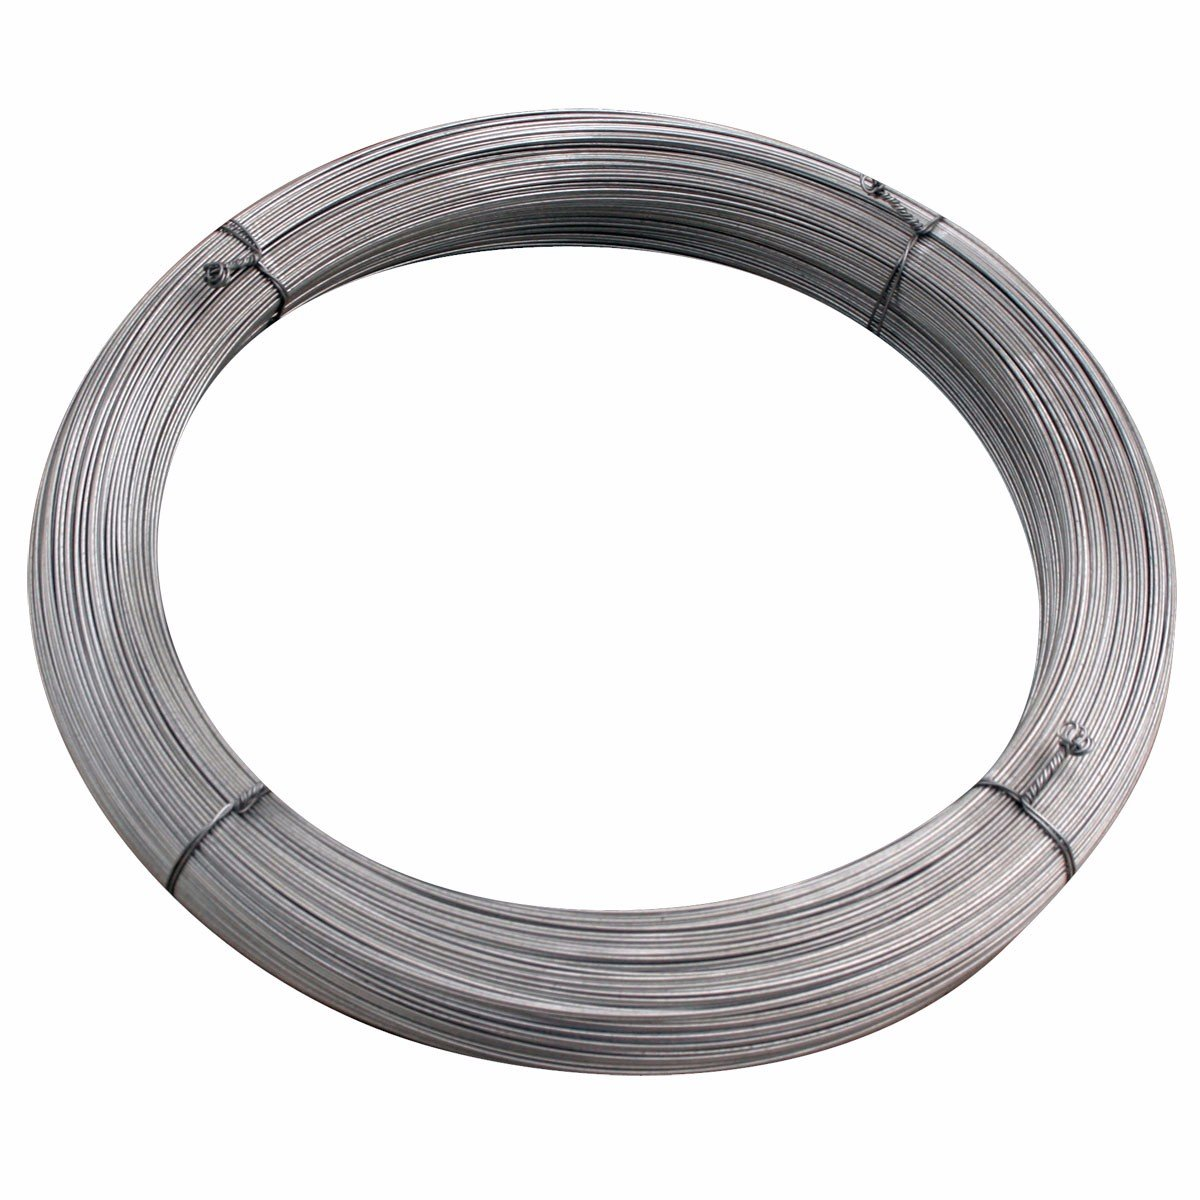 12 1/2 Gauge High-Tensile Wire - POWERFIELDS - High Quality Electric ...